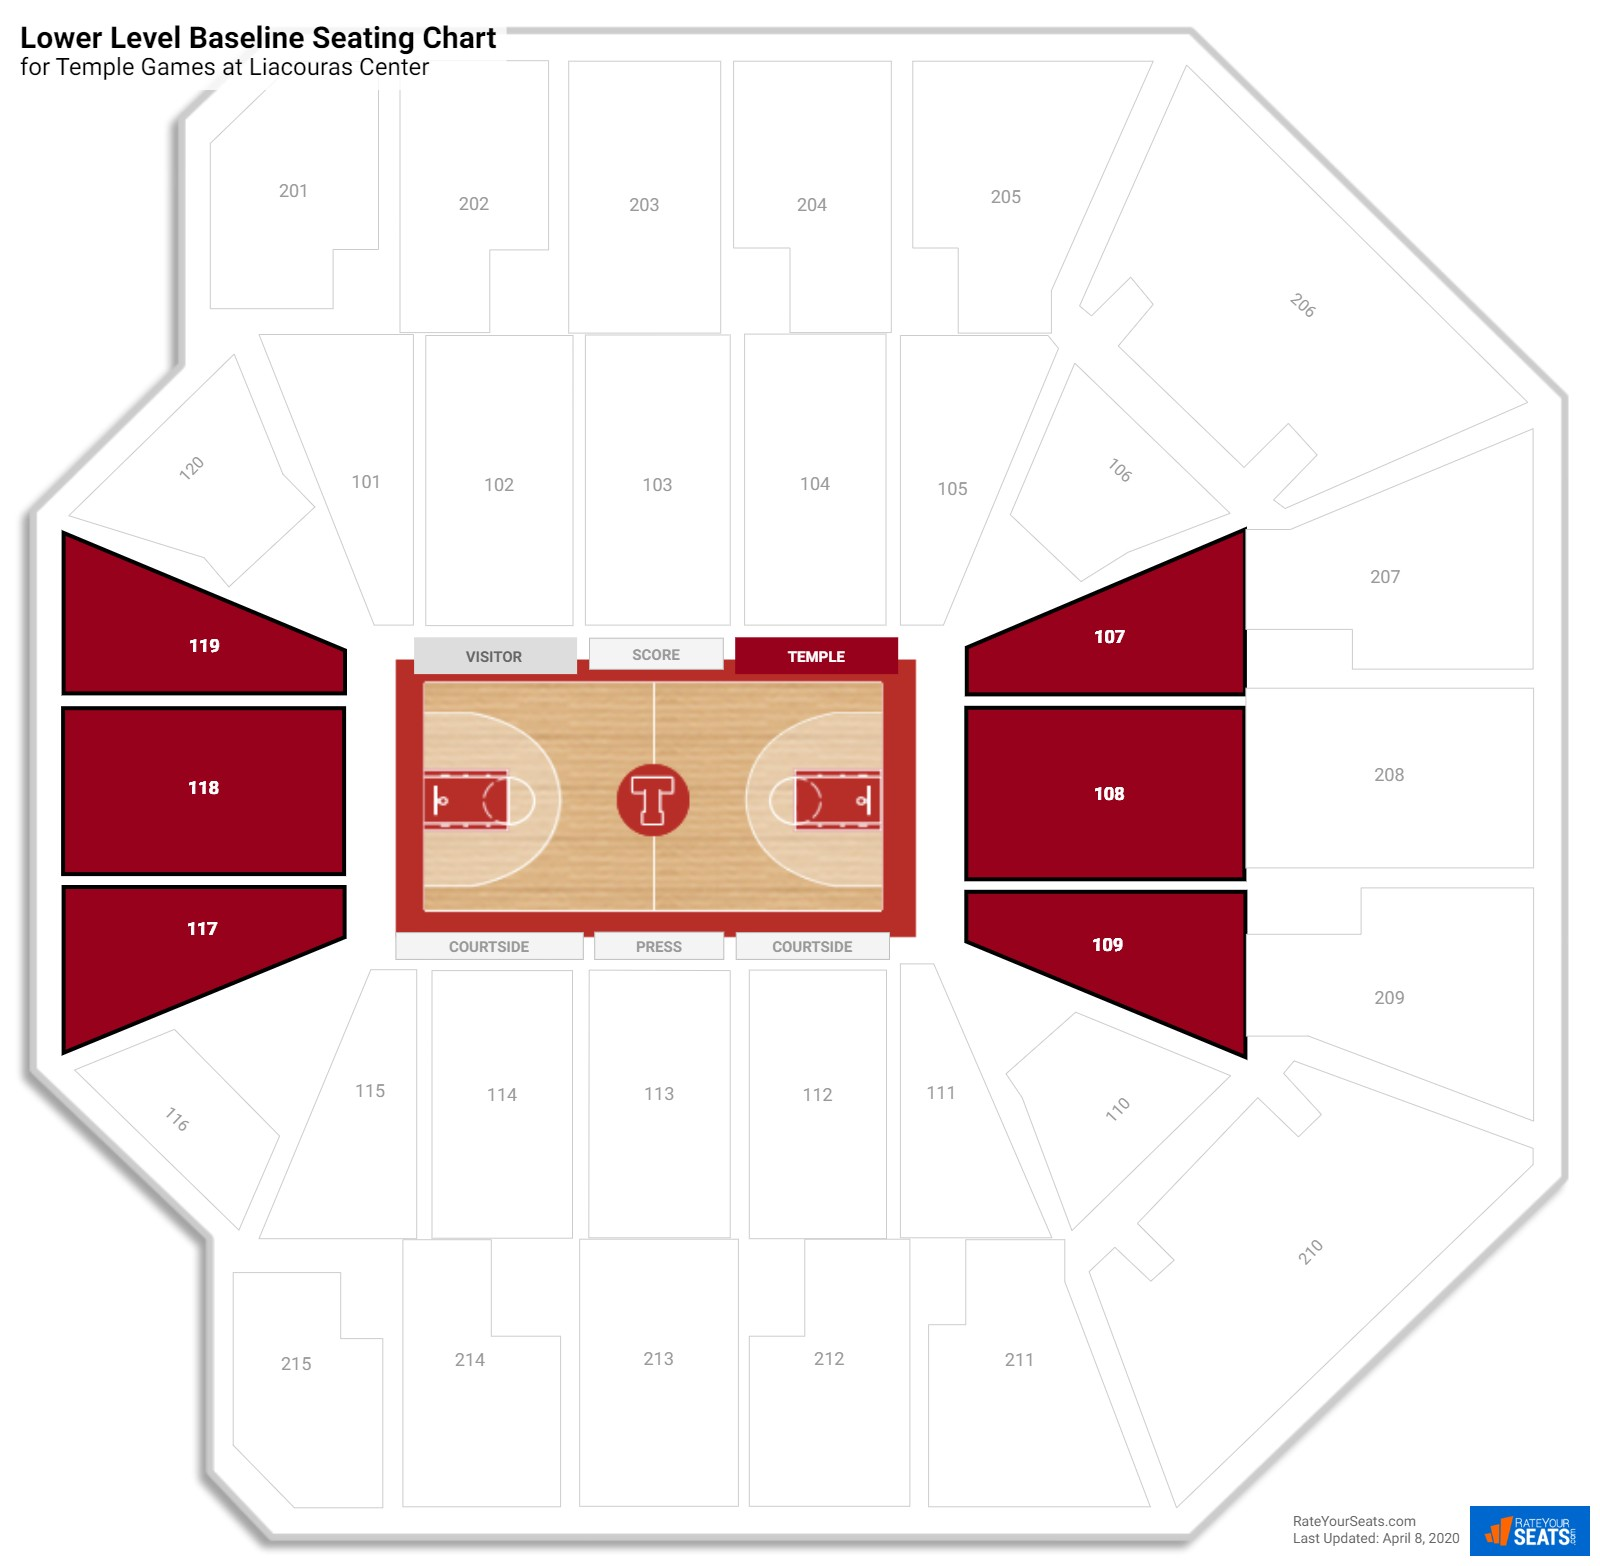 Liacouras Center Lower Level Baseline seating chart